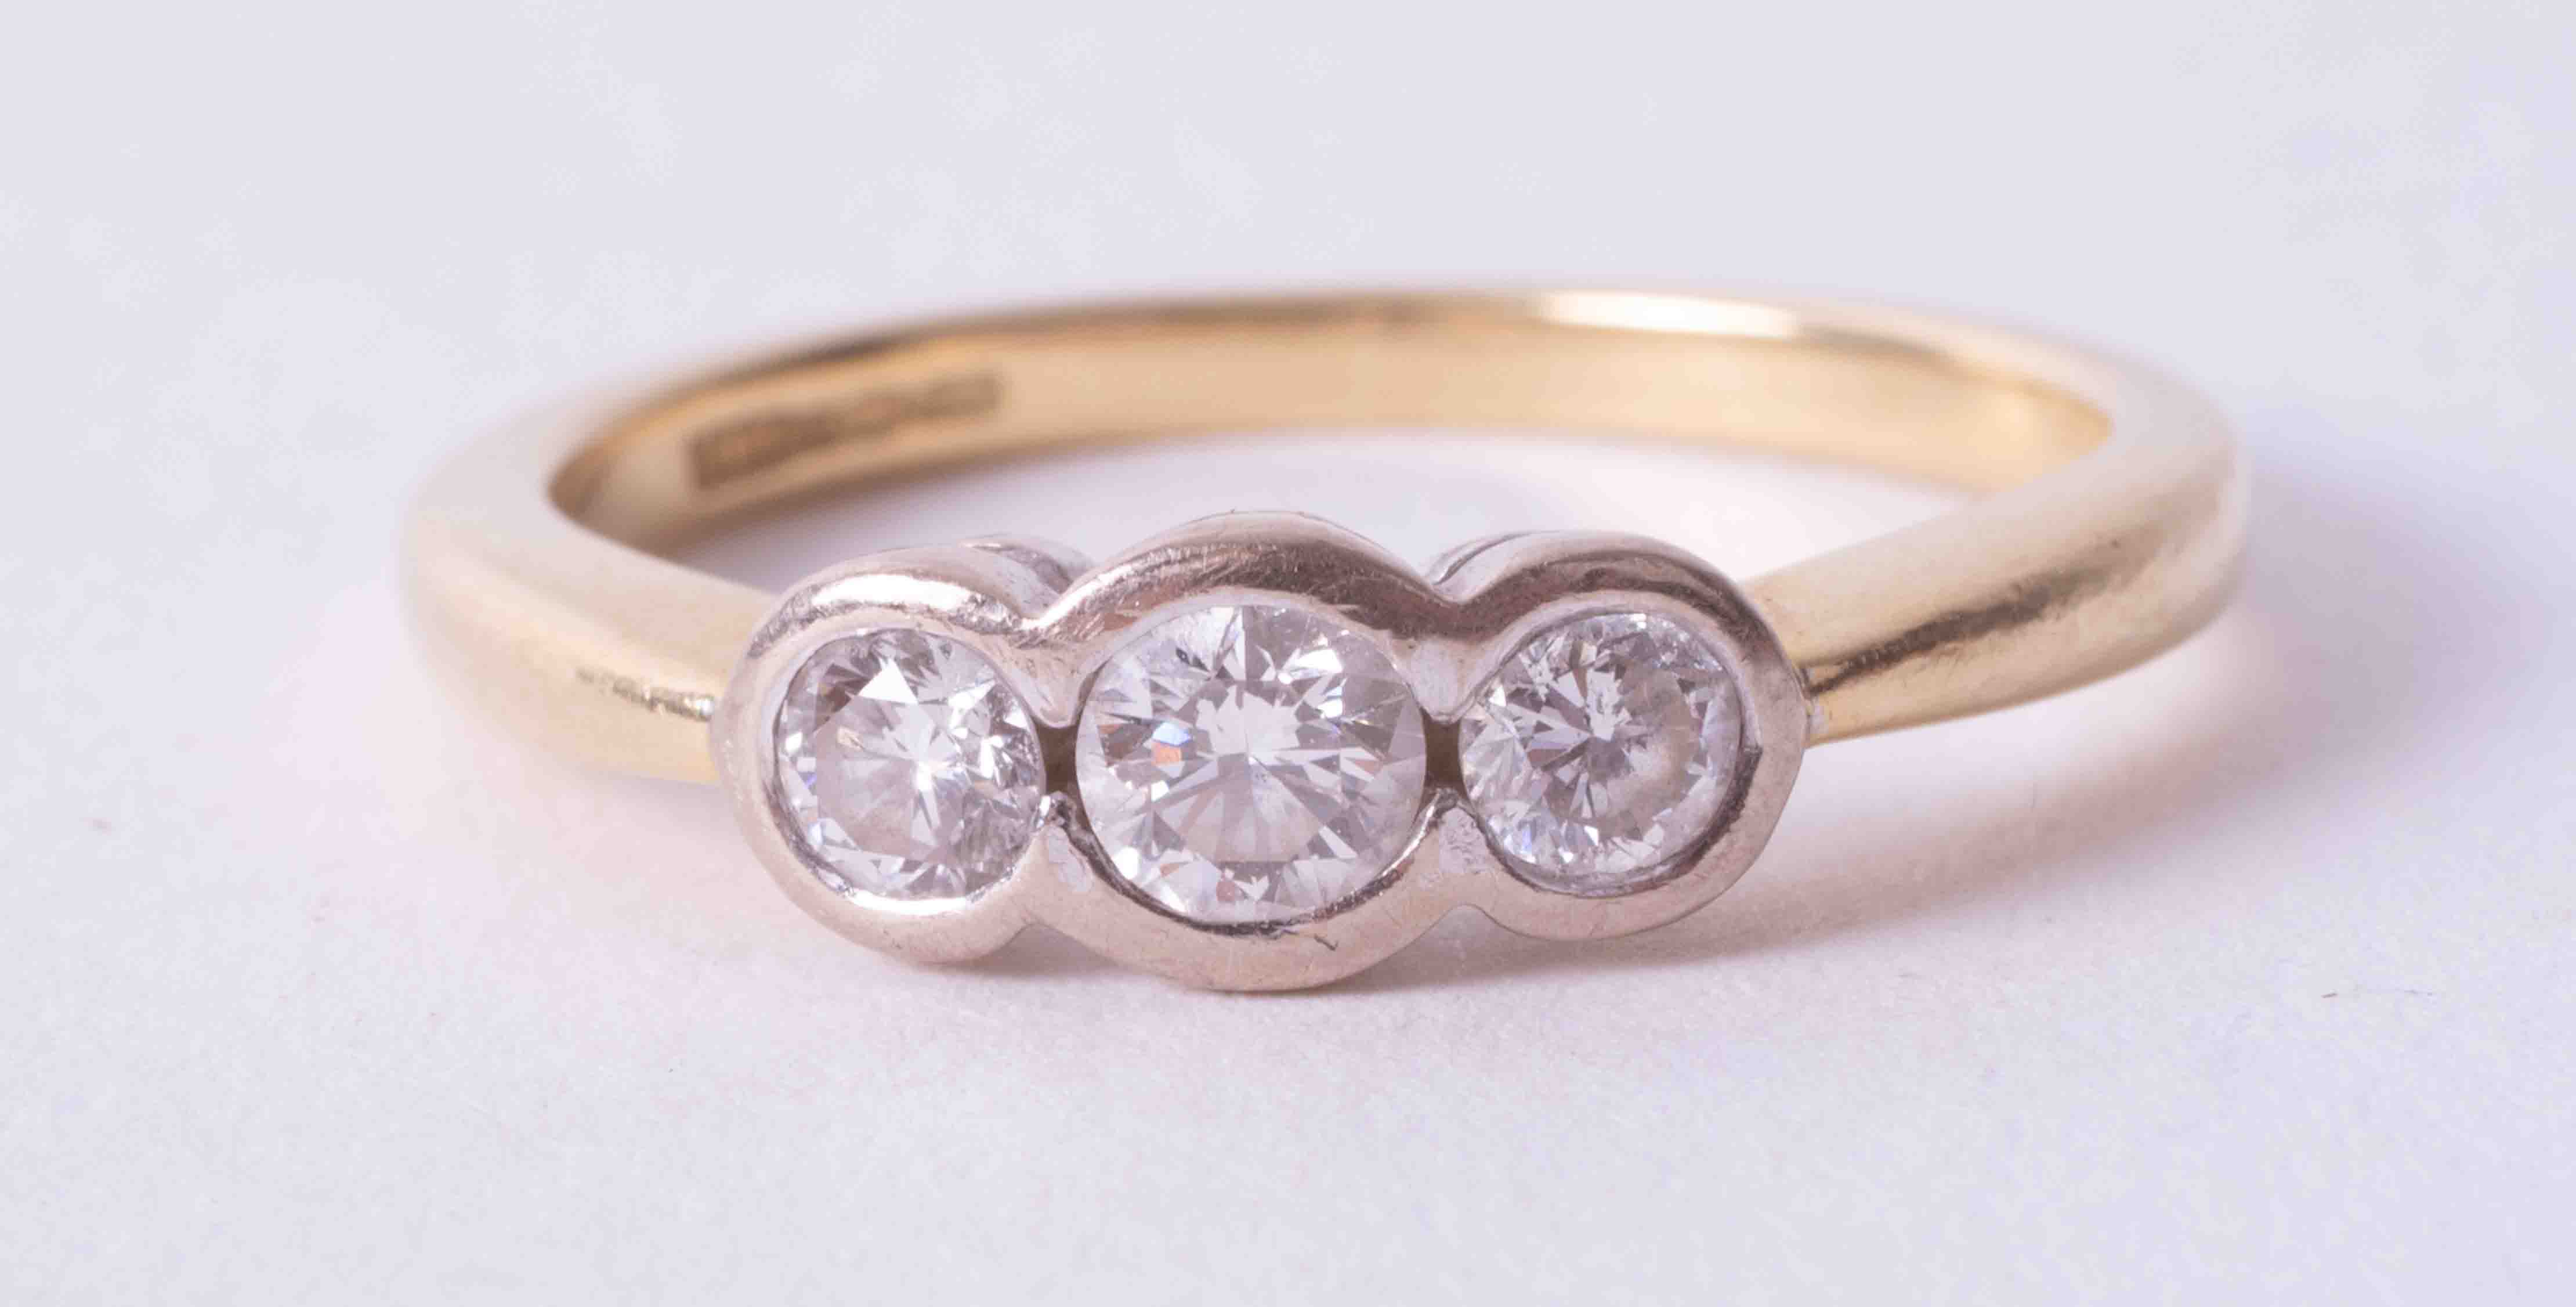 An 18ct yellow & white gold three stone ring set with approx. 0.37 carats total weight of